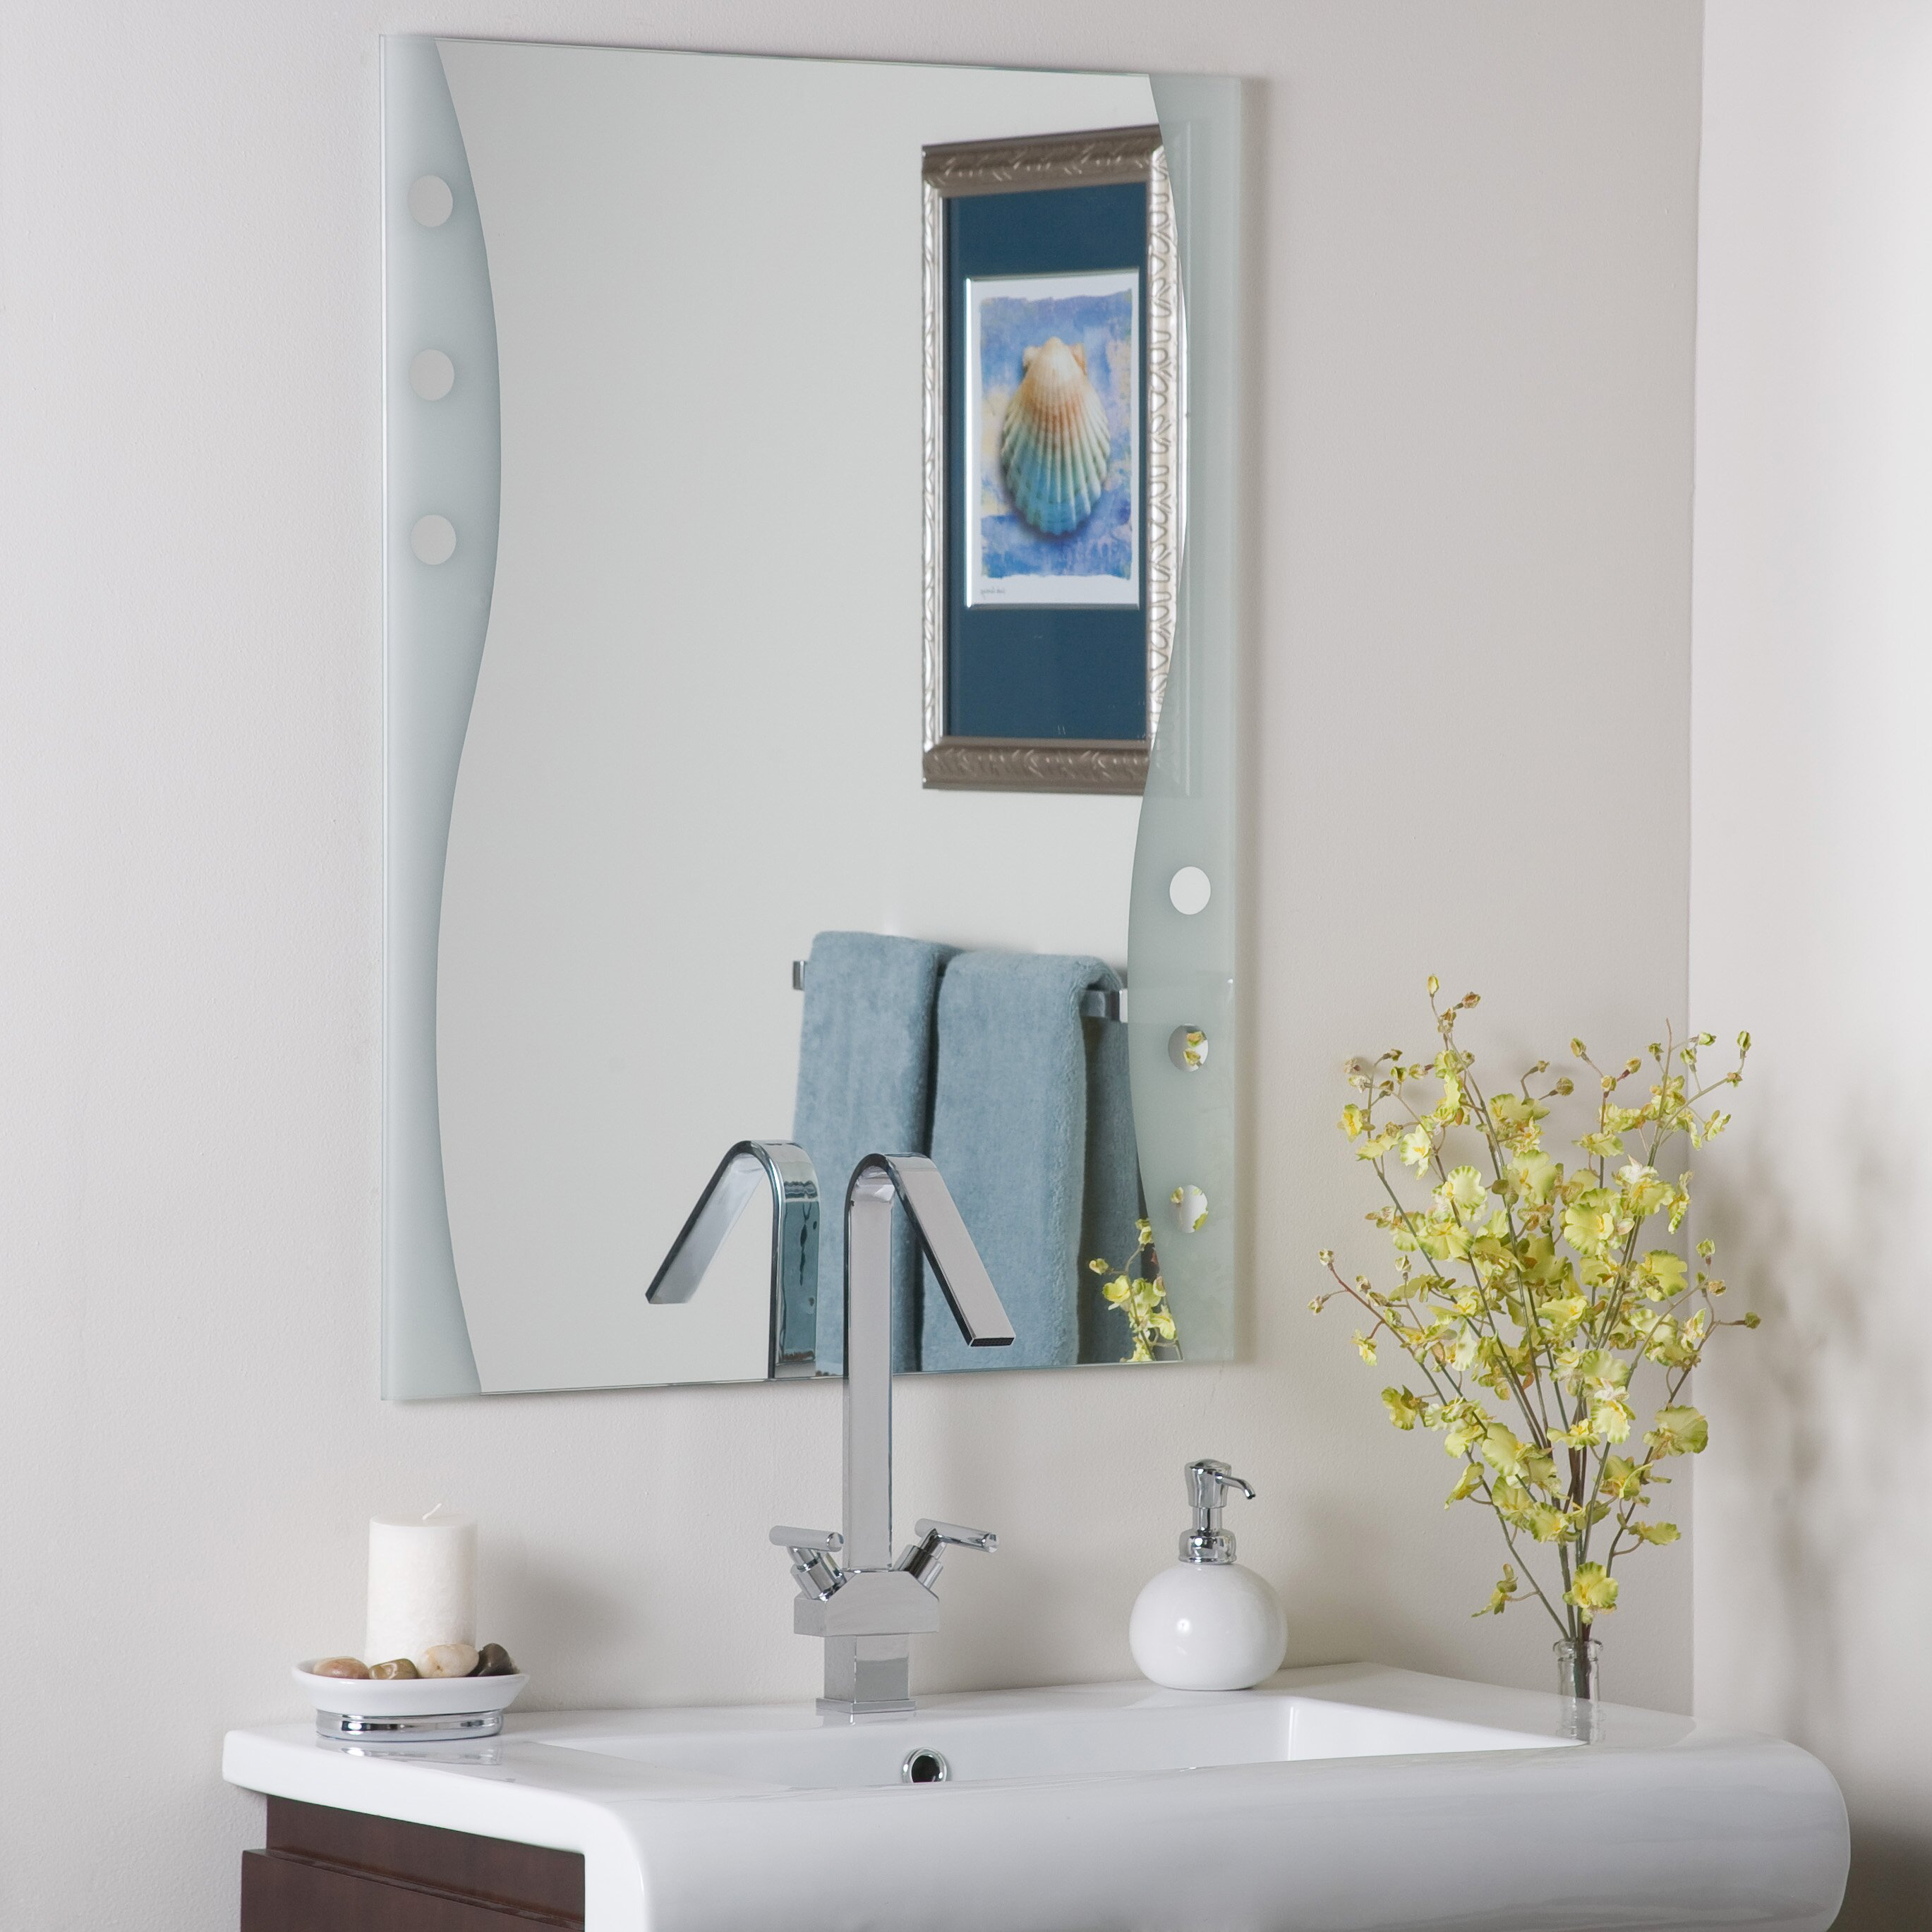 Decor wonderland frameless maritime wall mirror reviews for Frameless wall mirror